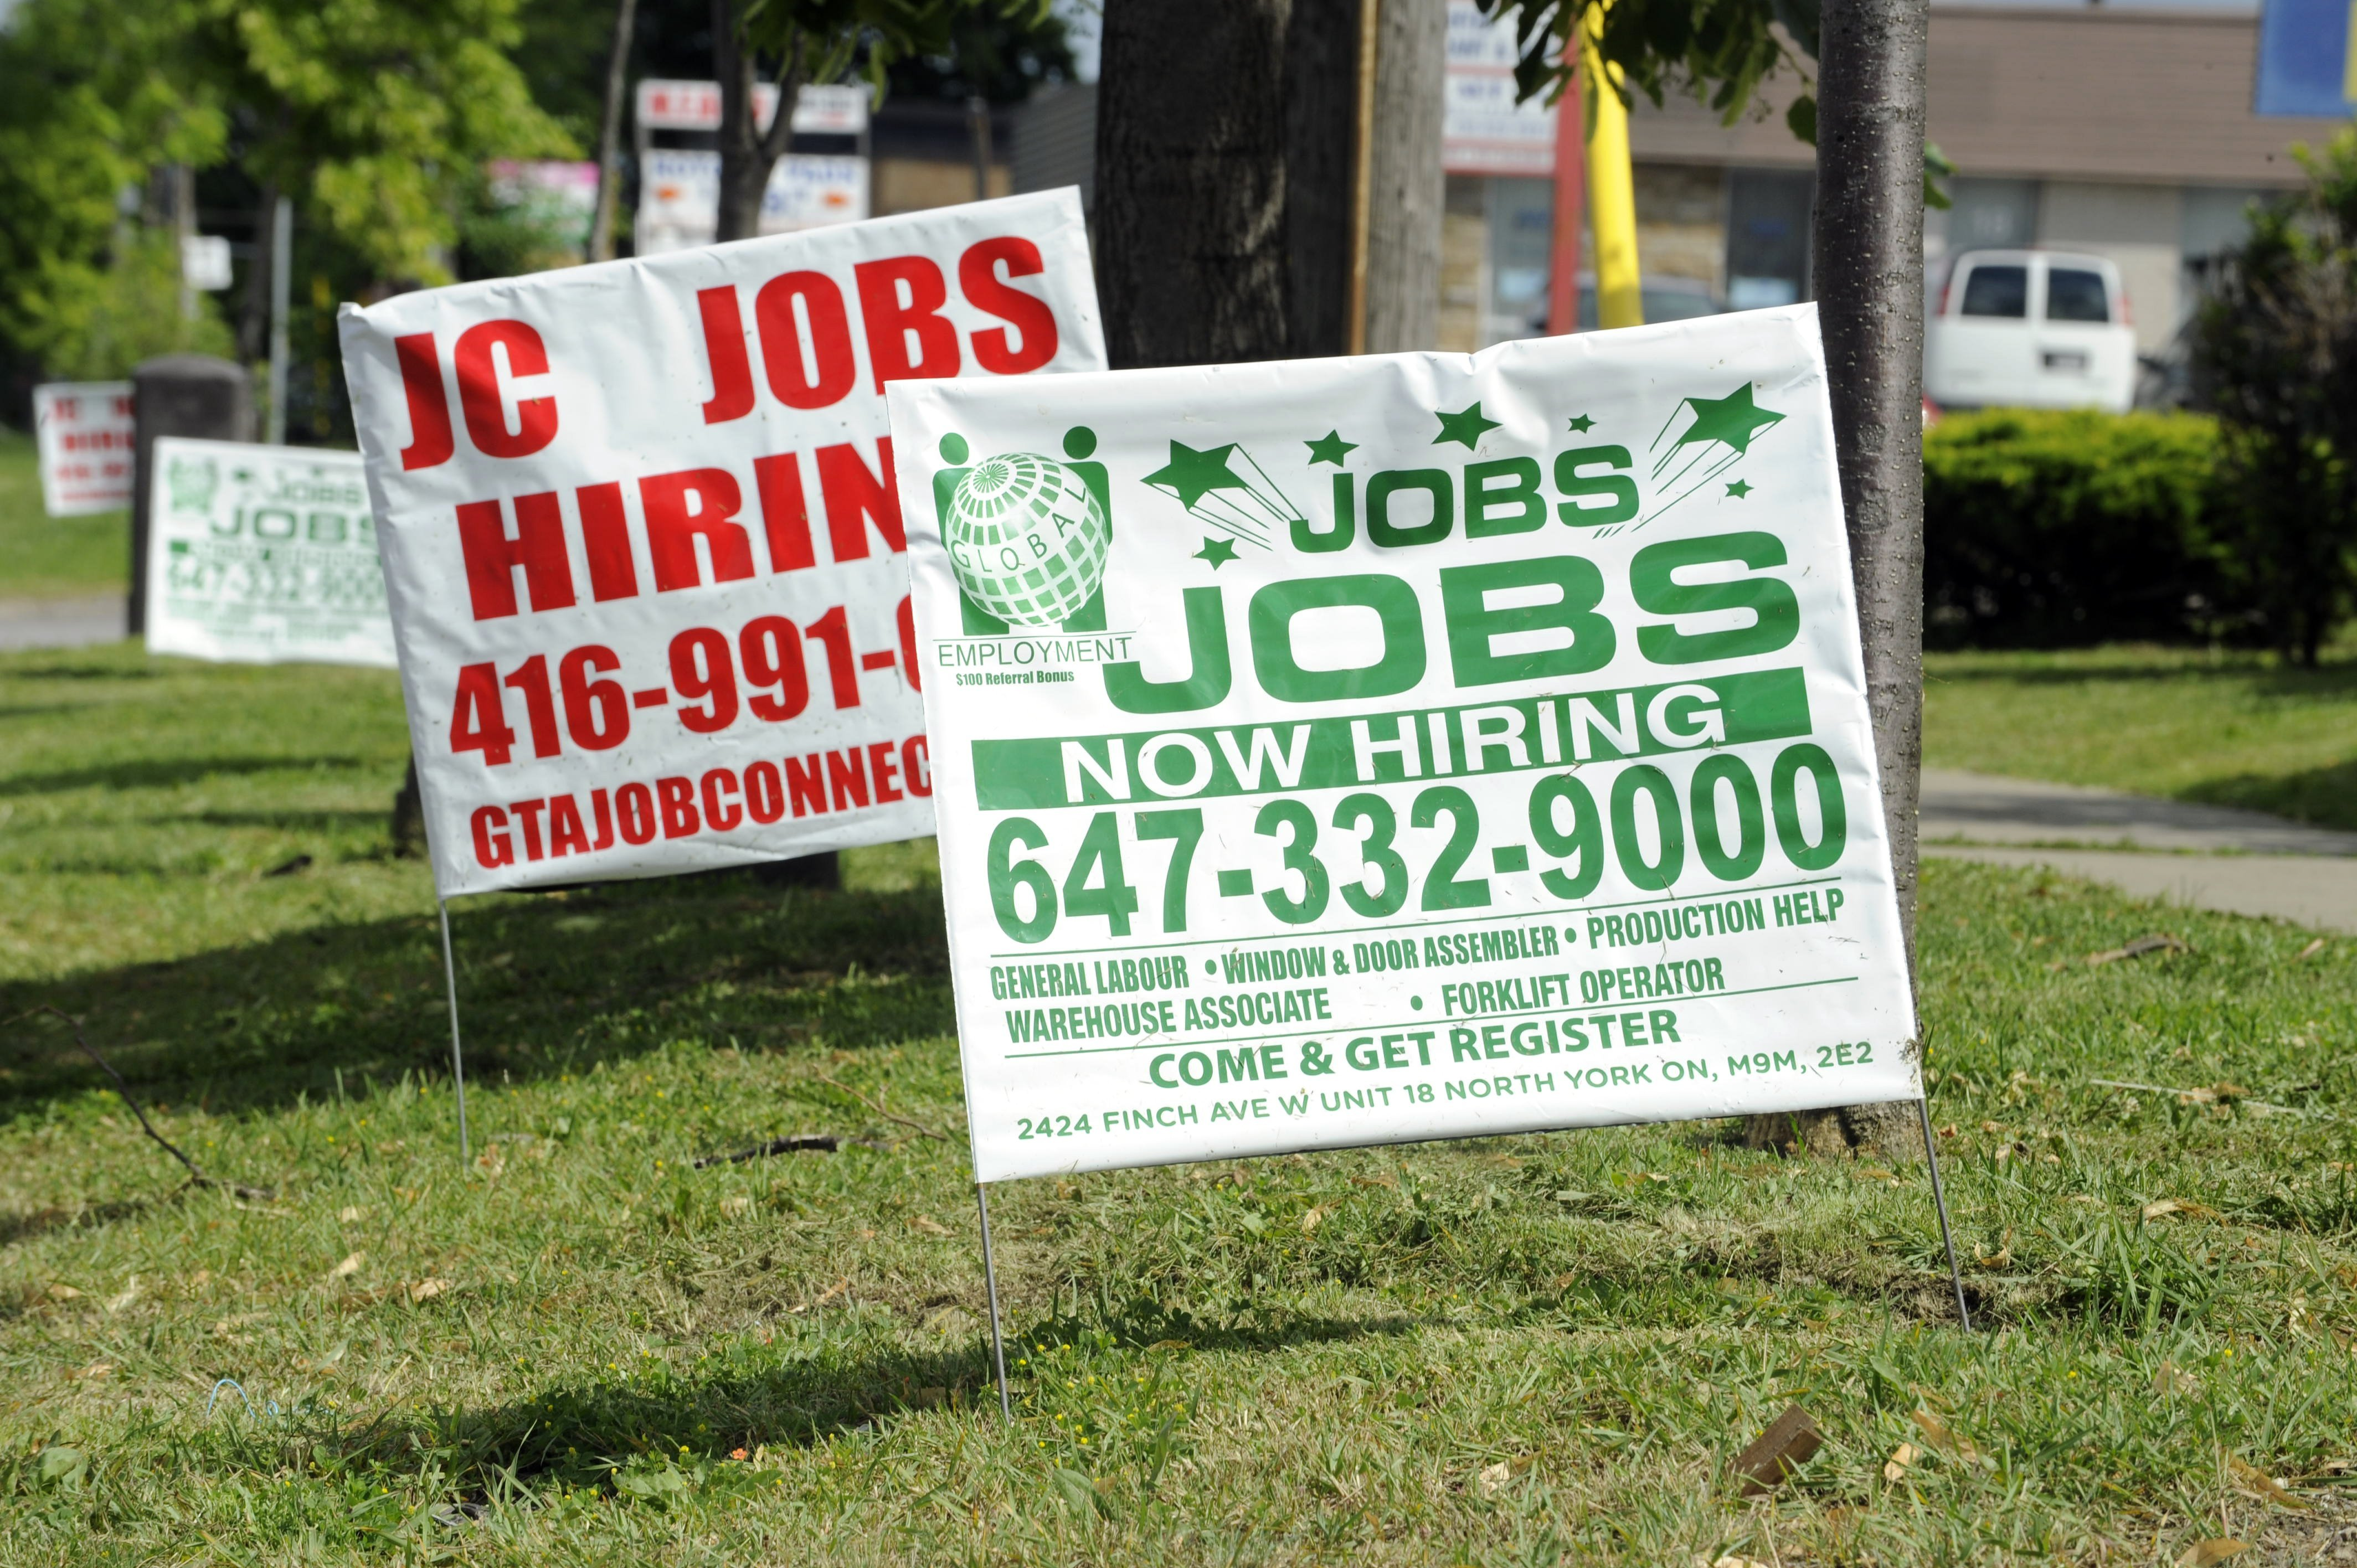 Temporary workers in Jane and Finch area are being exploited